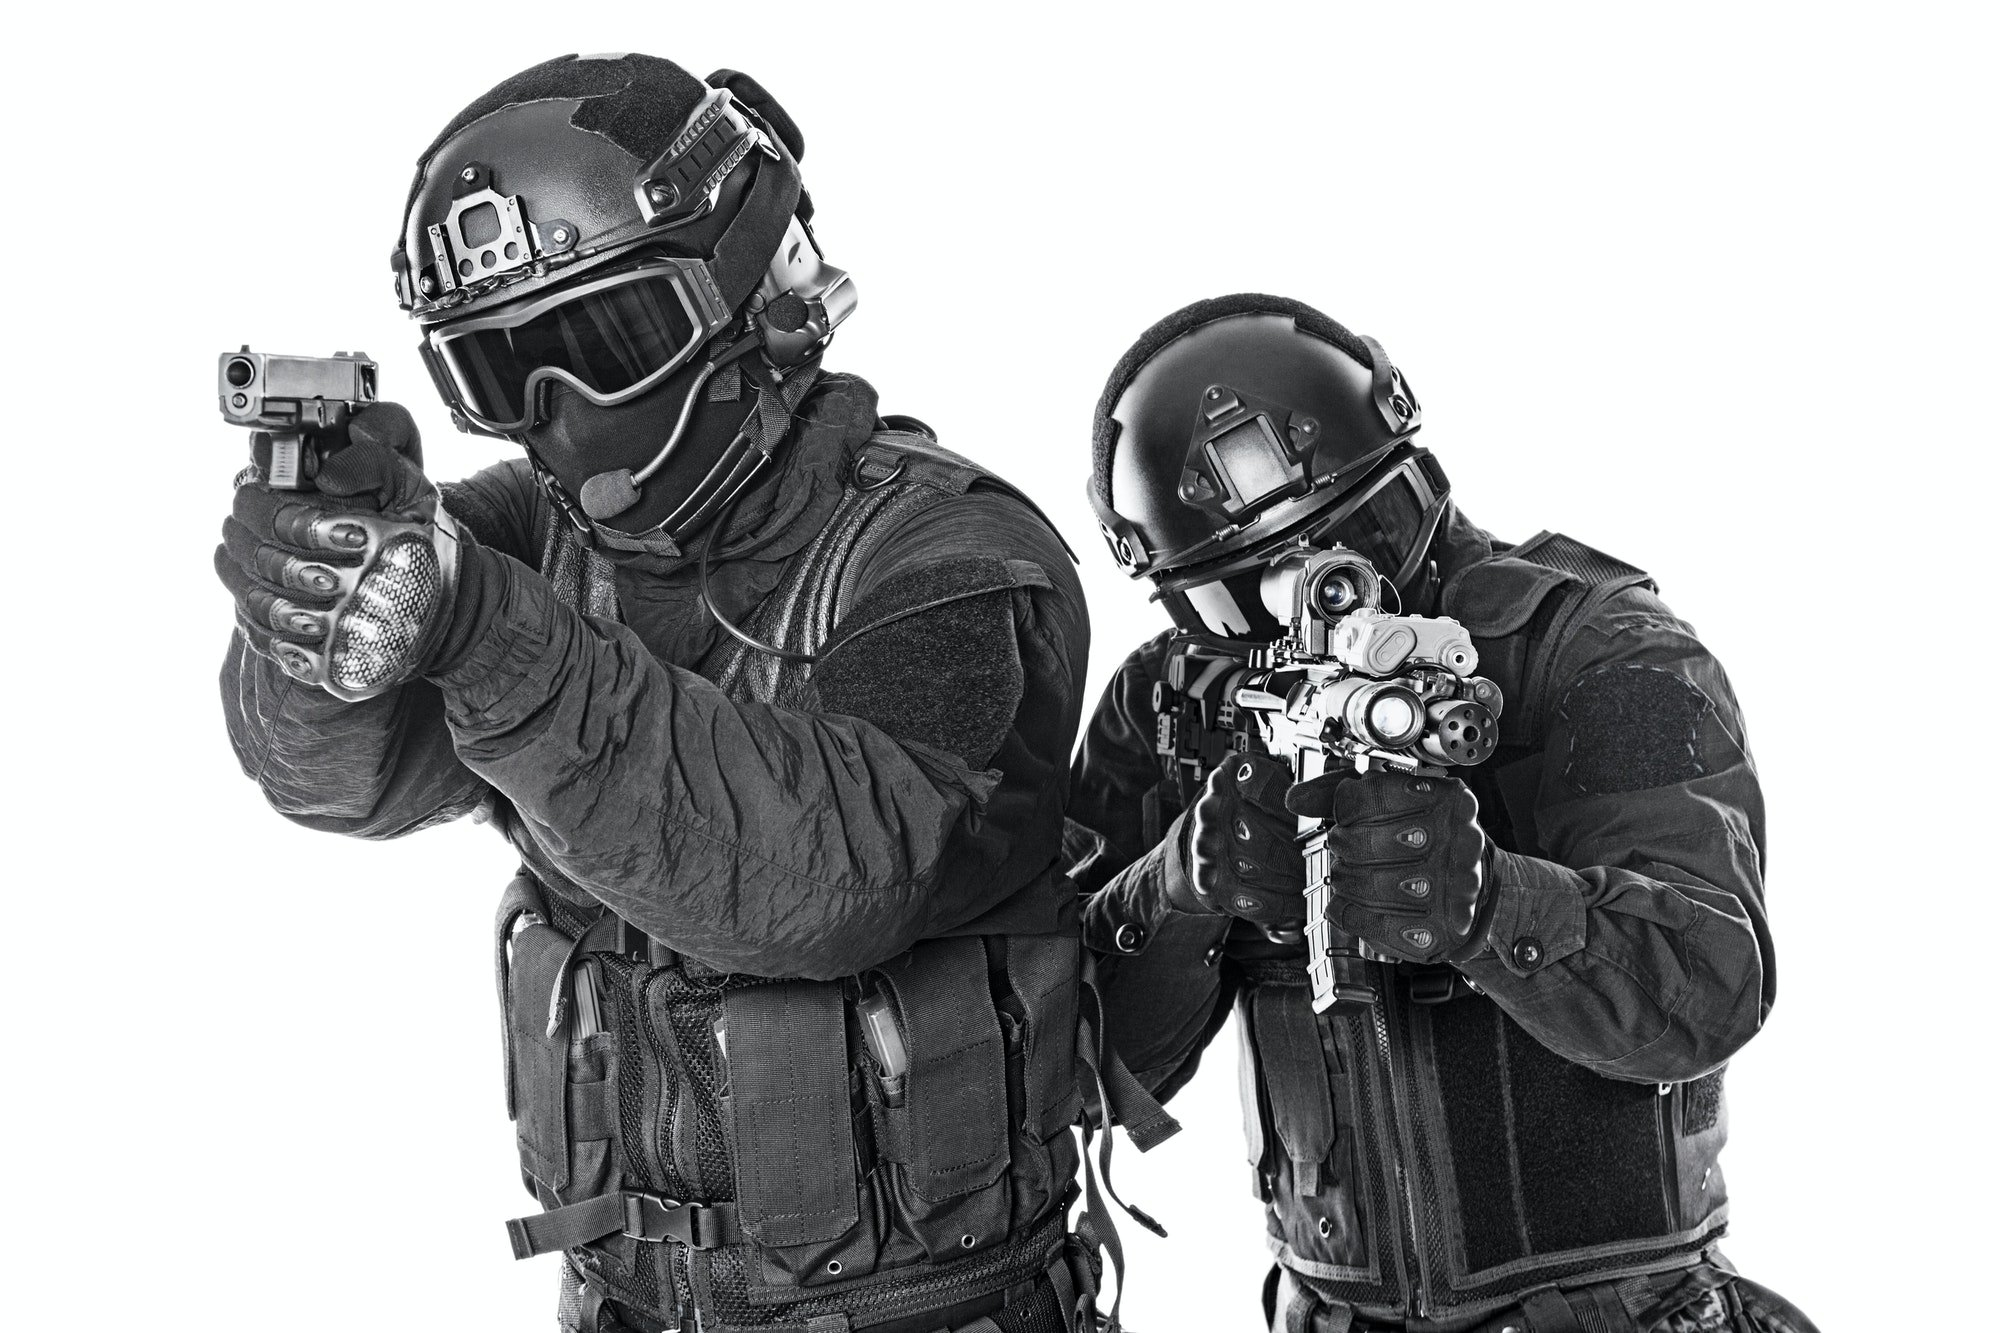 Material Policial swat police special forces with rifle